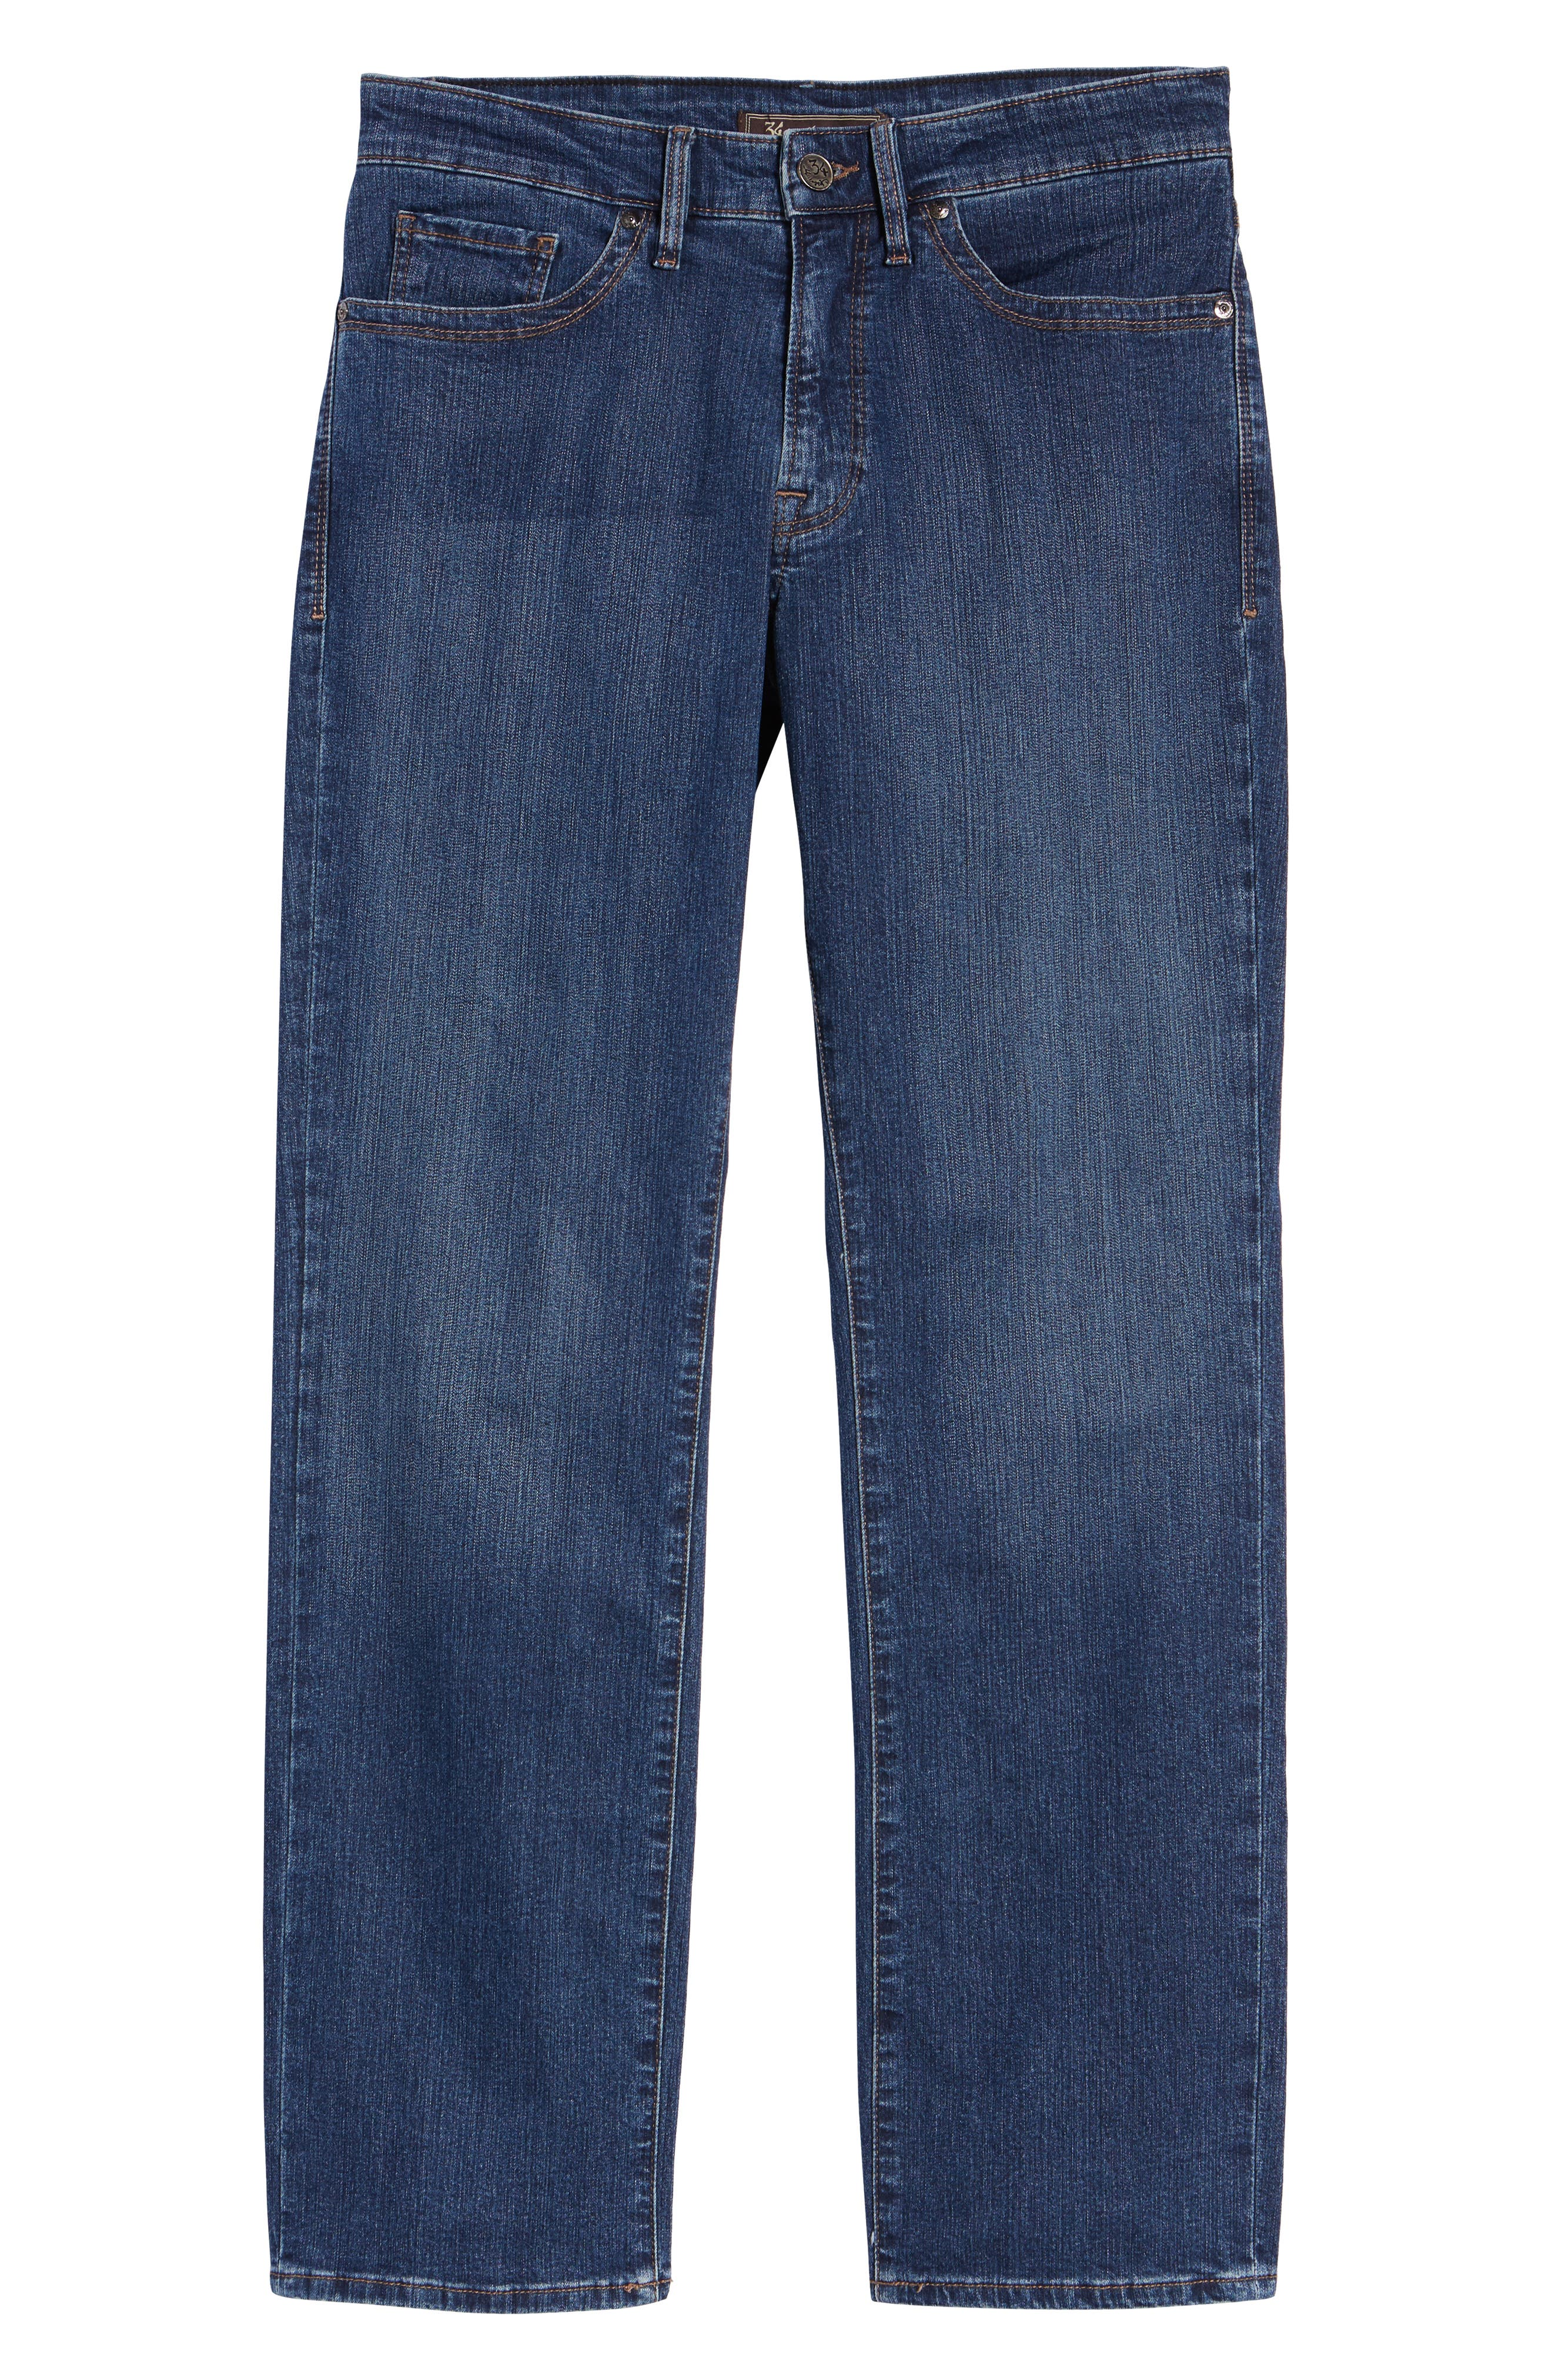 34 HERITAGE,                             'Charisma' Classic Relaxed Fit Jeans,                             Alternate thumbnail 2, color,                             MID COMFORT